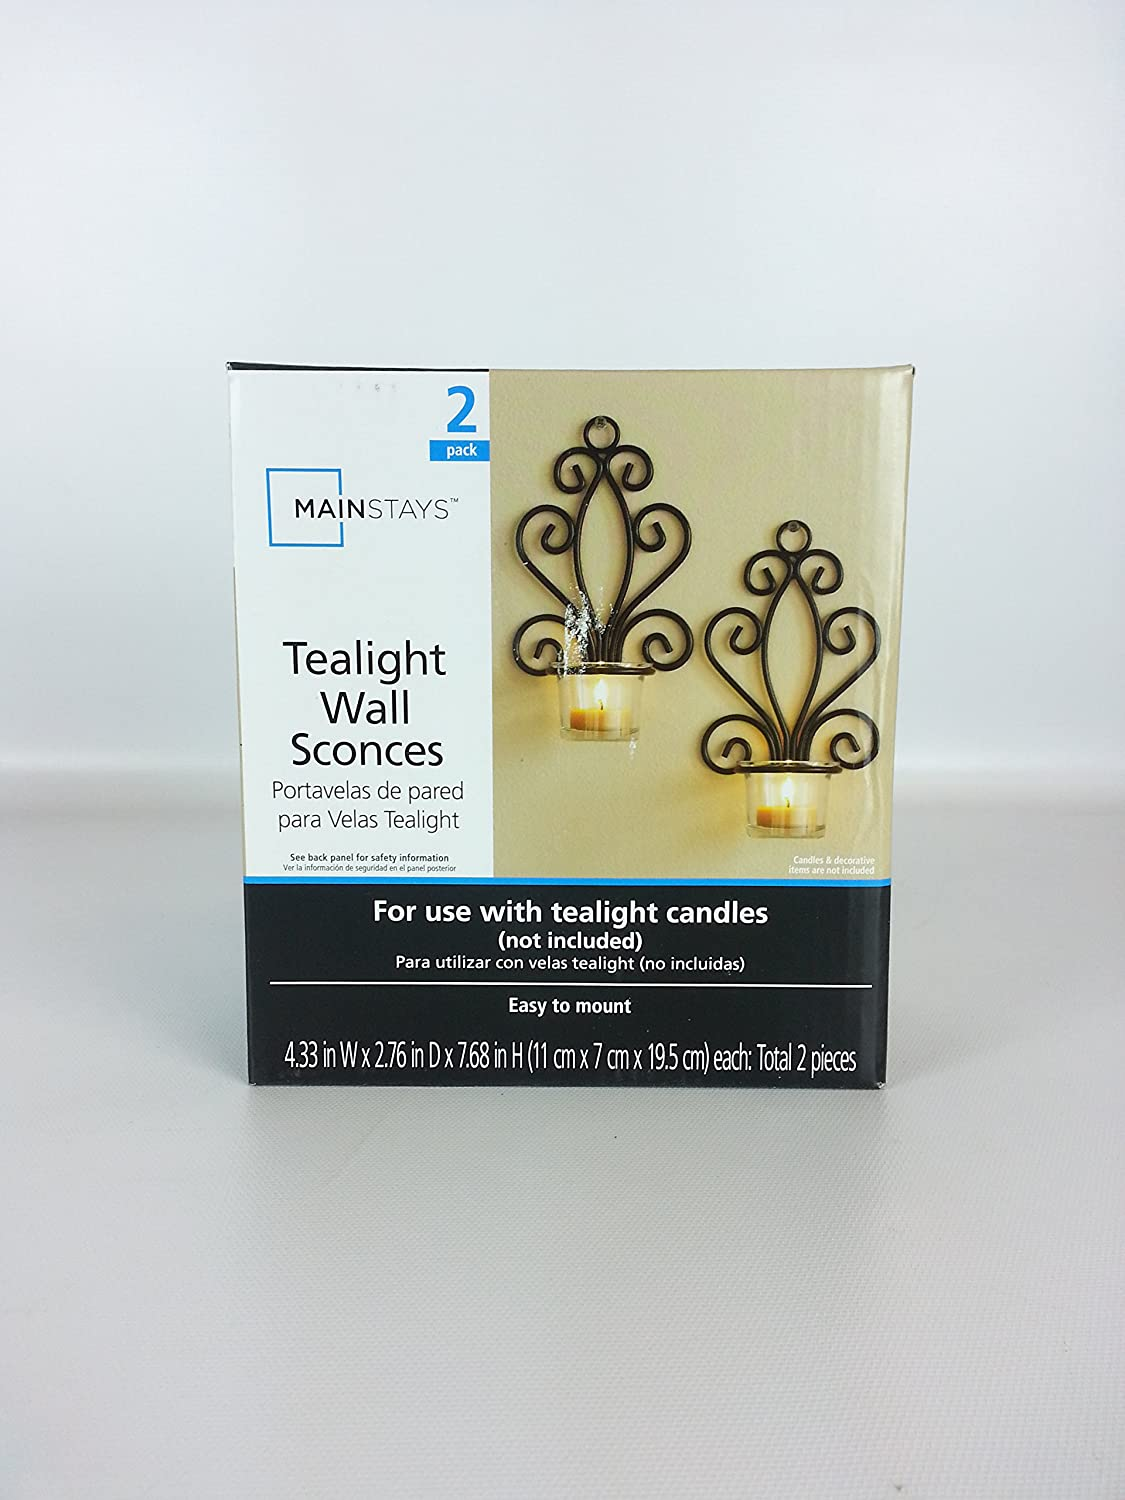 Mainstays 76 X 43 Tealight Wall Sconces 2 Pack Amazon